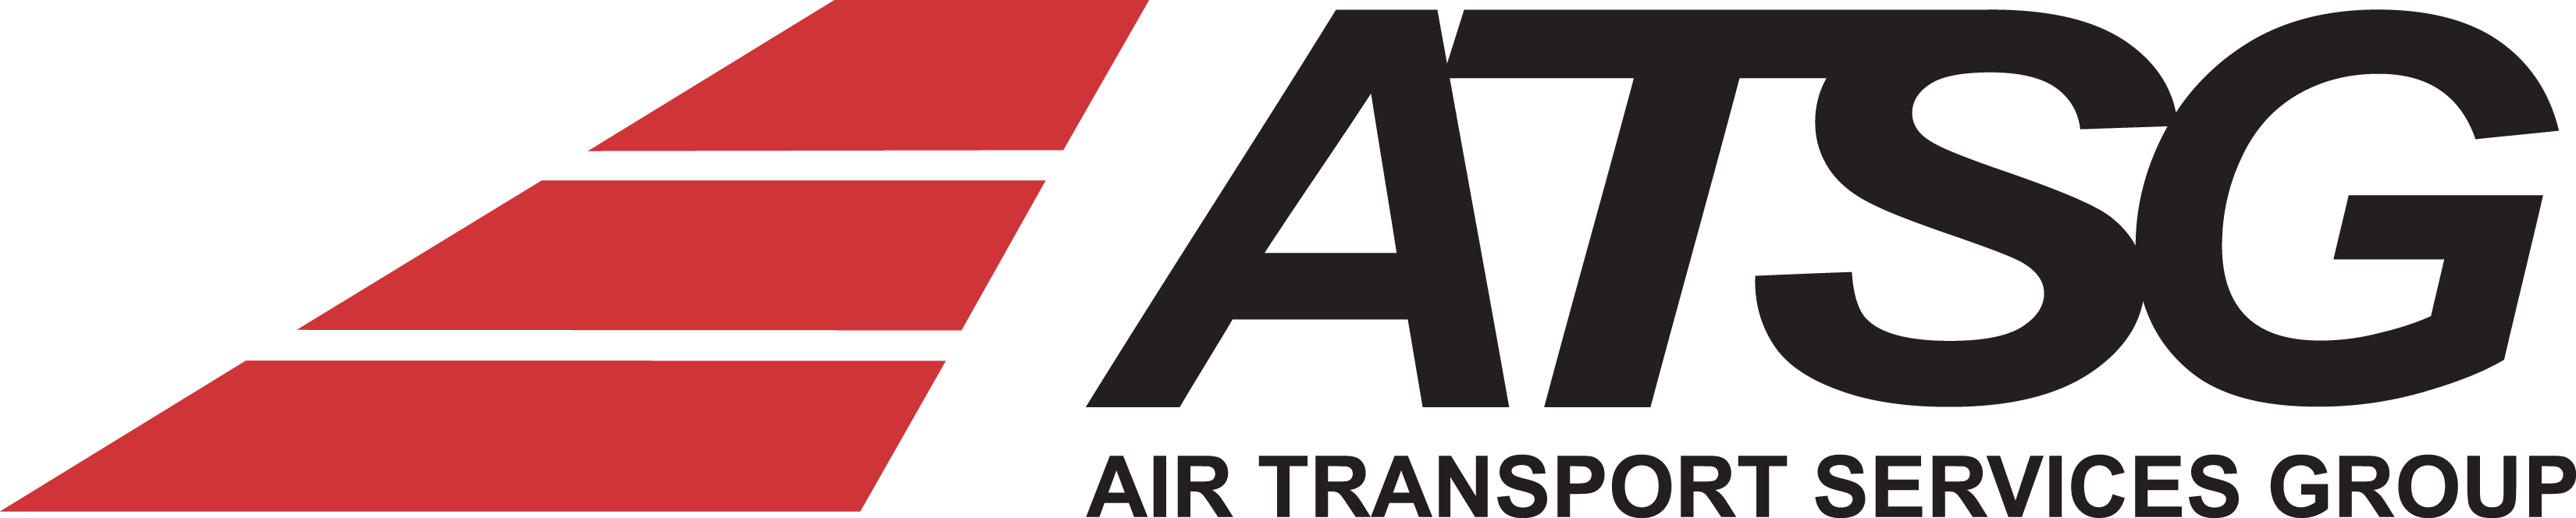 Air Transport Services Group Logo